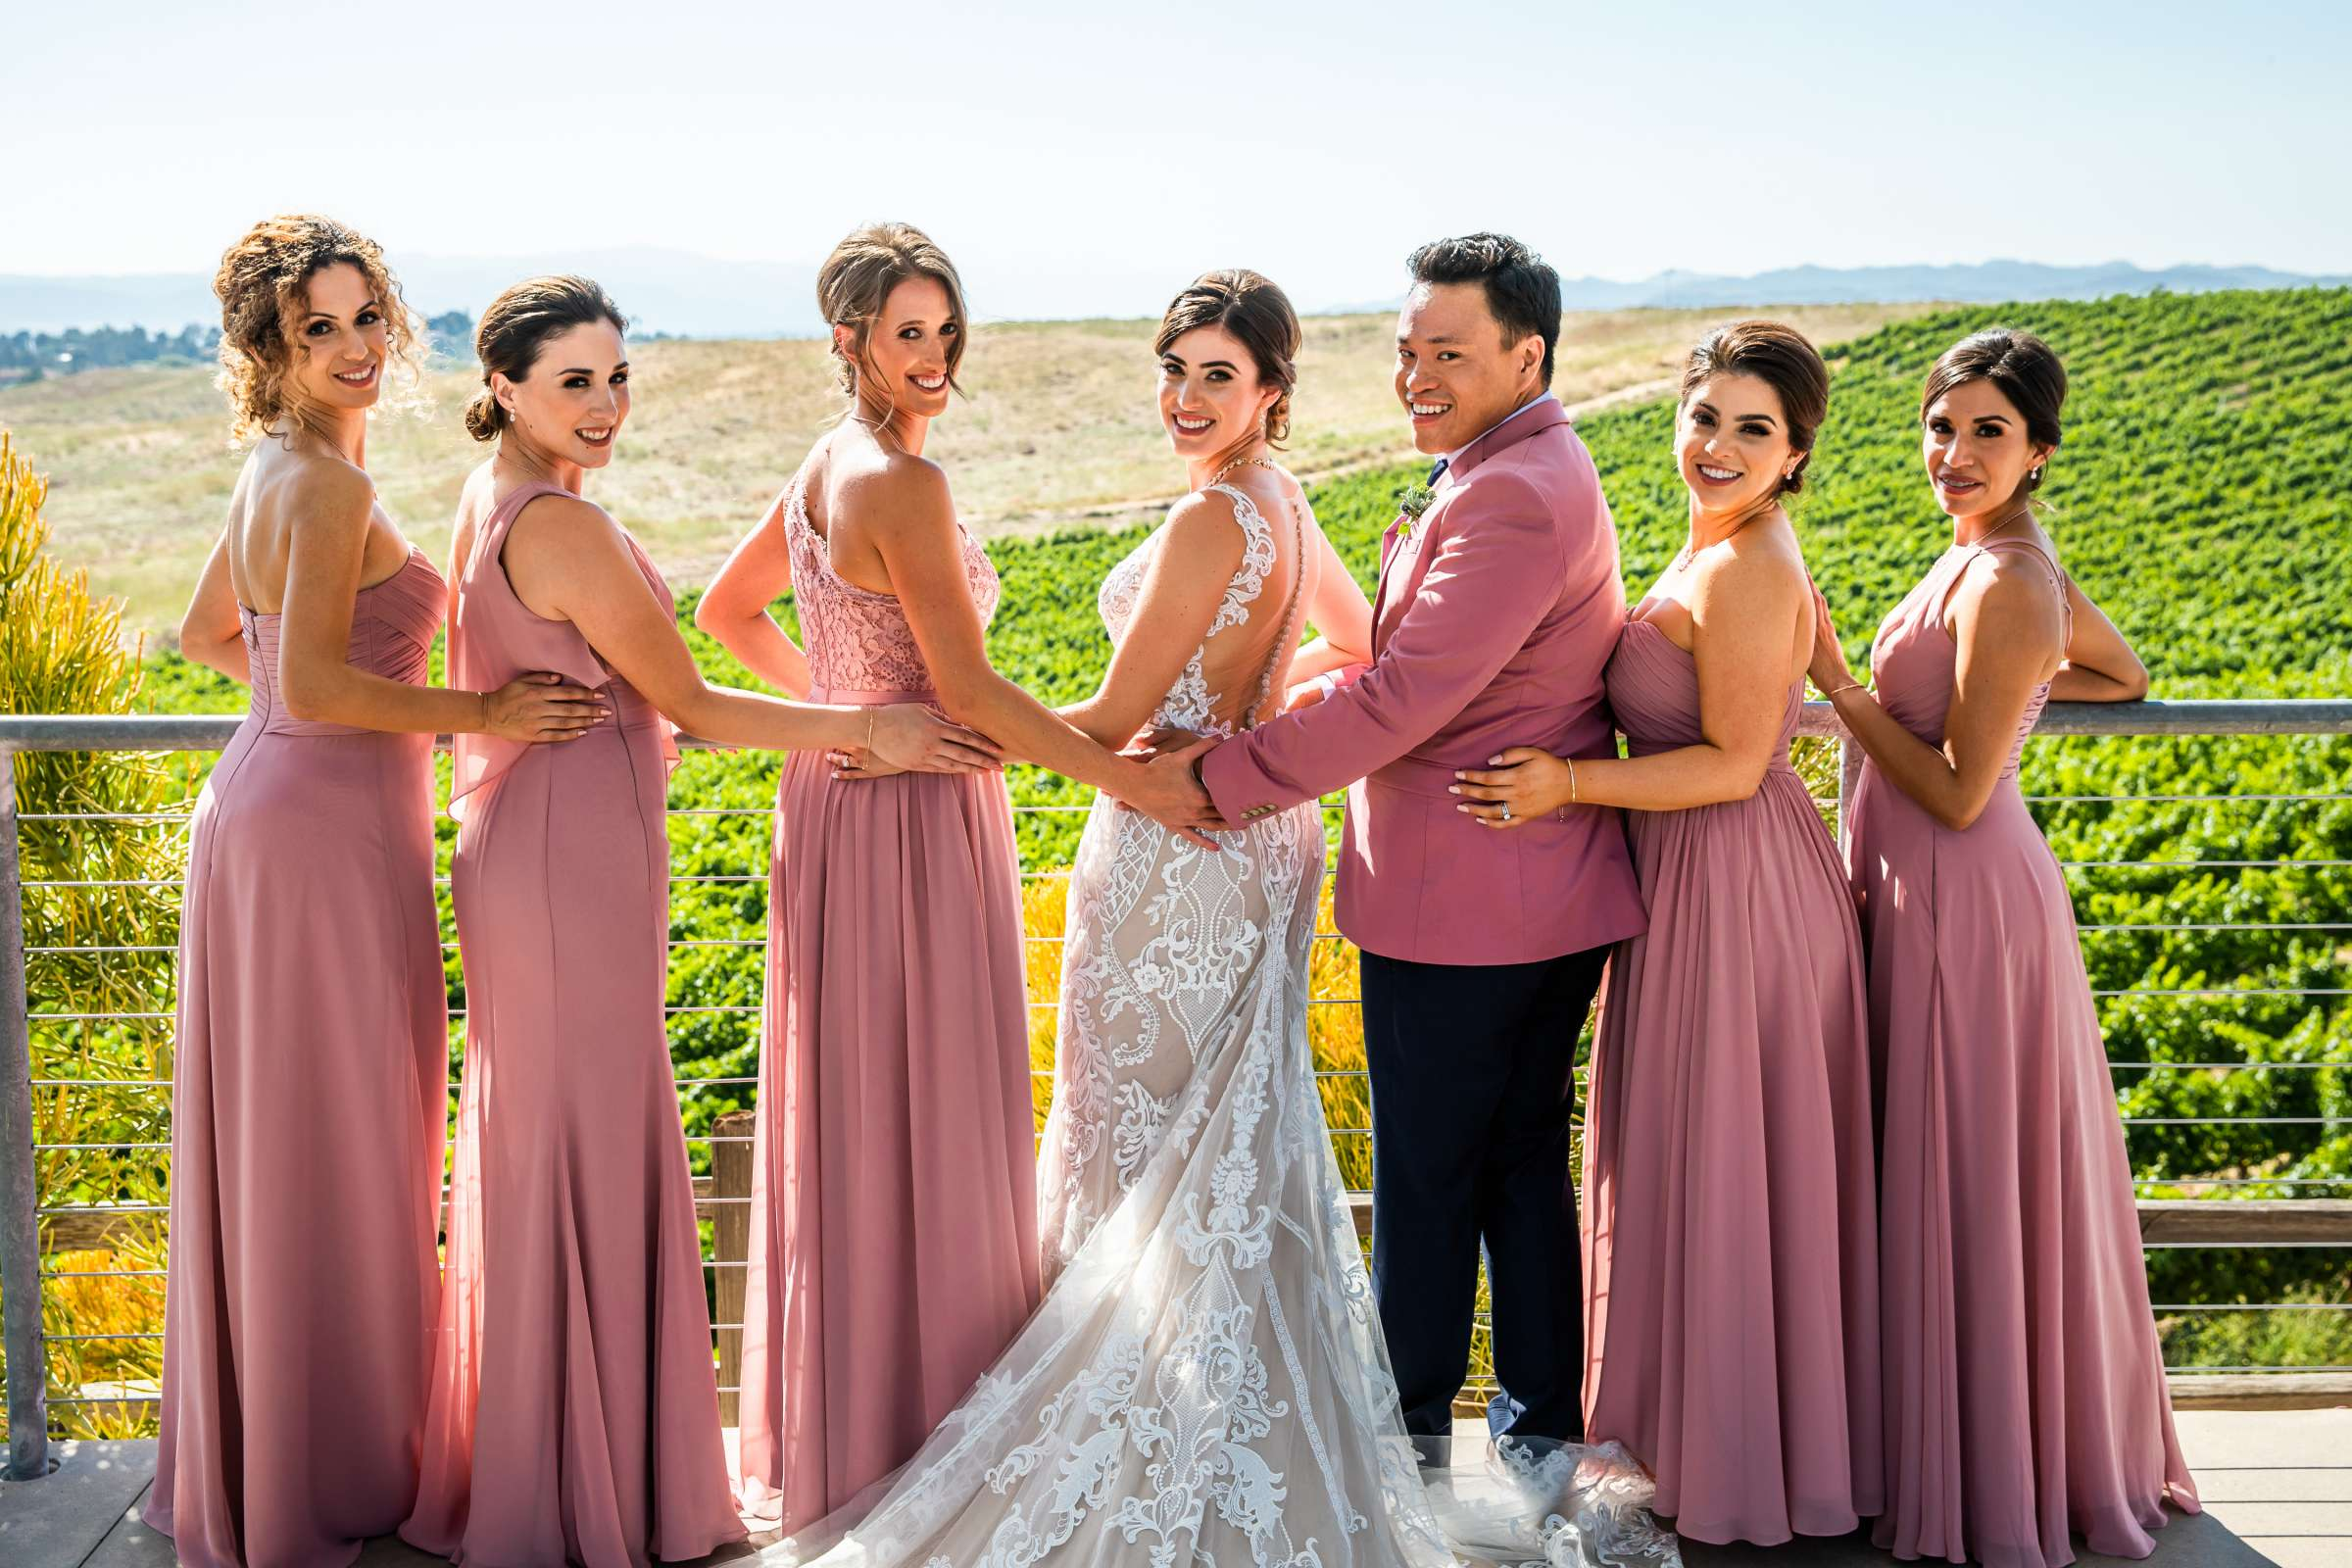 Callaway Vineyards & Winery Wedding coordinated by Michelle Garibay Events, Chelsea and Luis carlos Wedding Photo #65 by True Photography